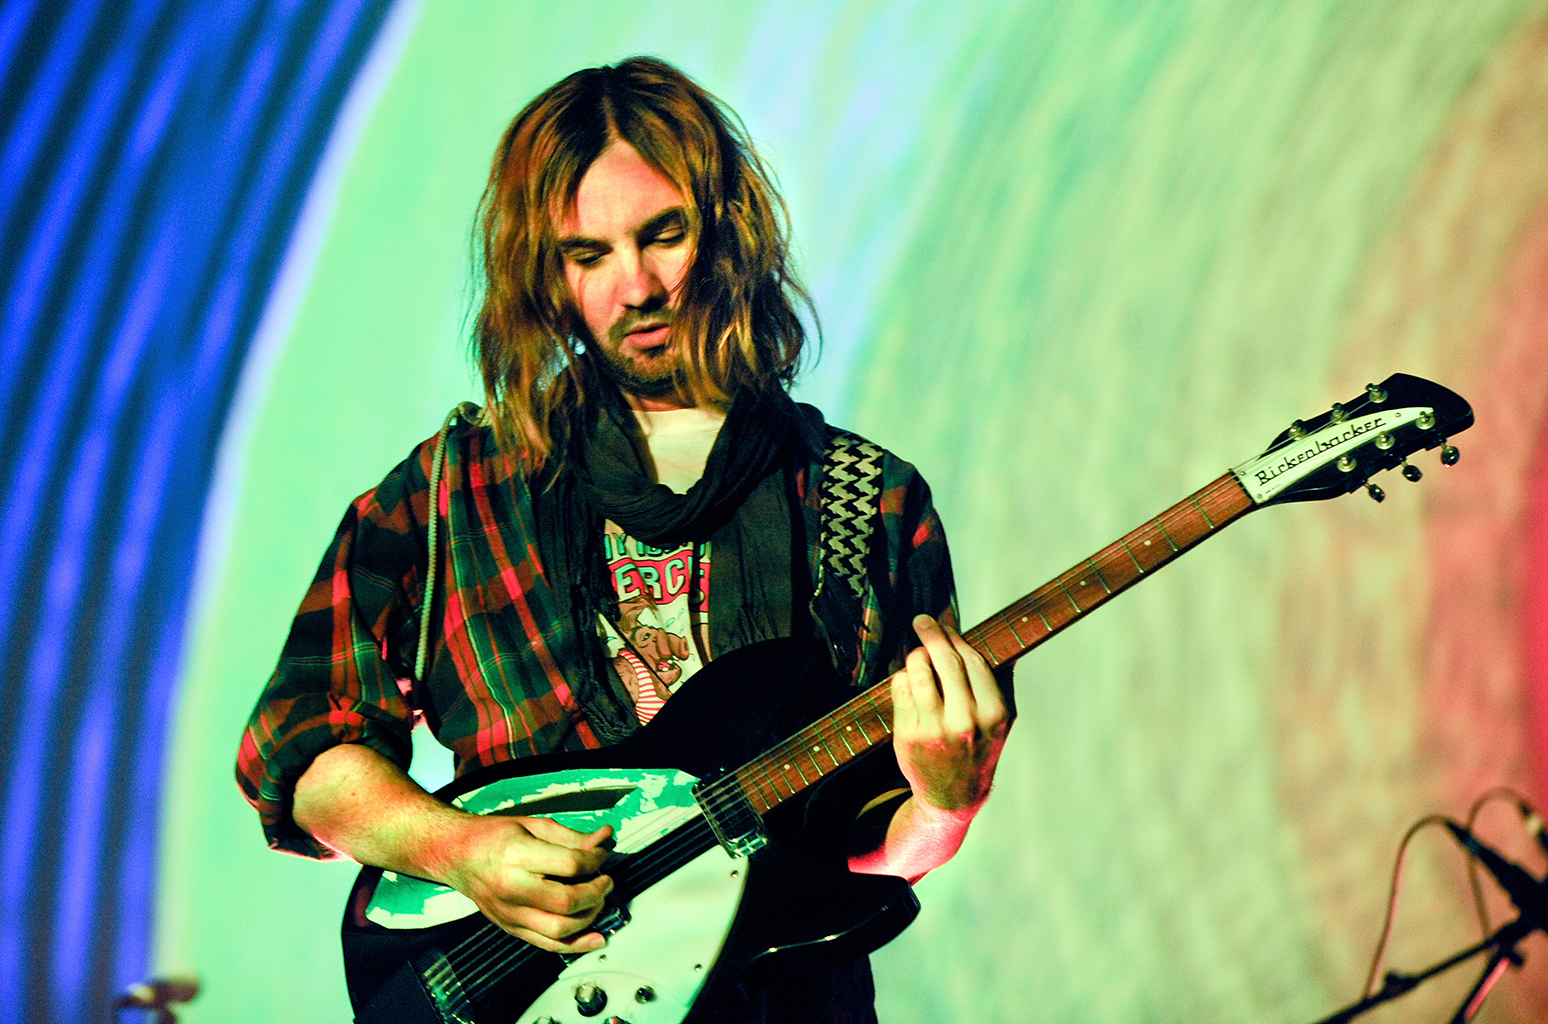 kevin-parker-of-tame-impala-2016-a-billboard-1548